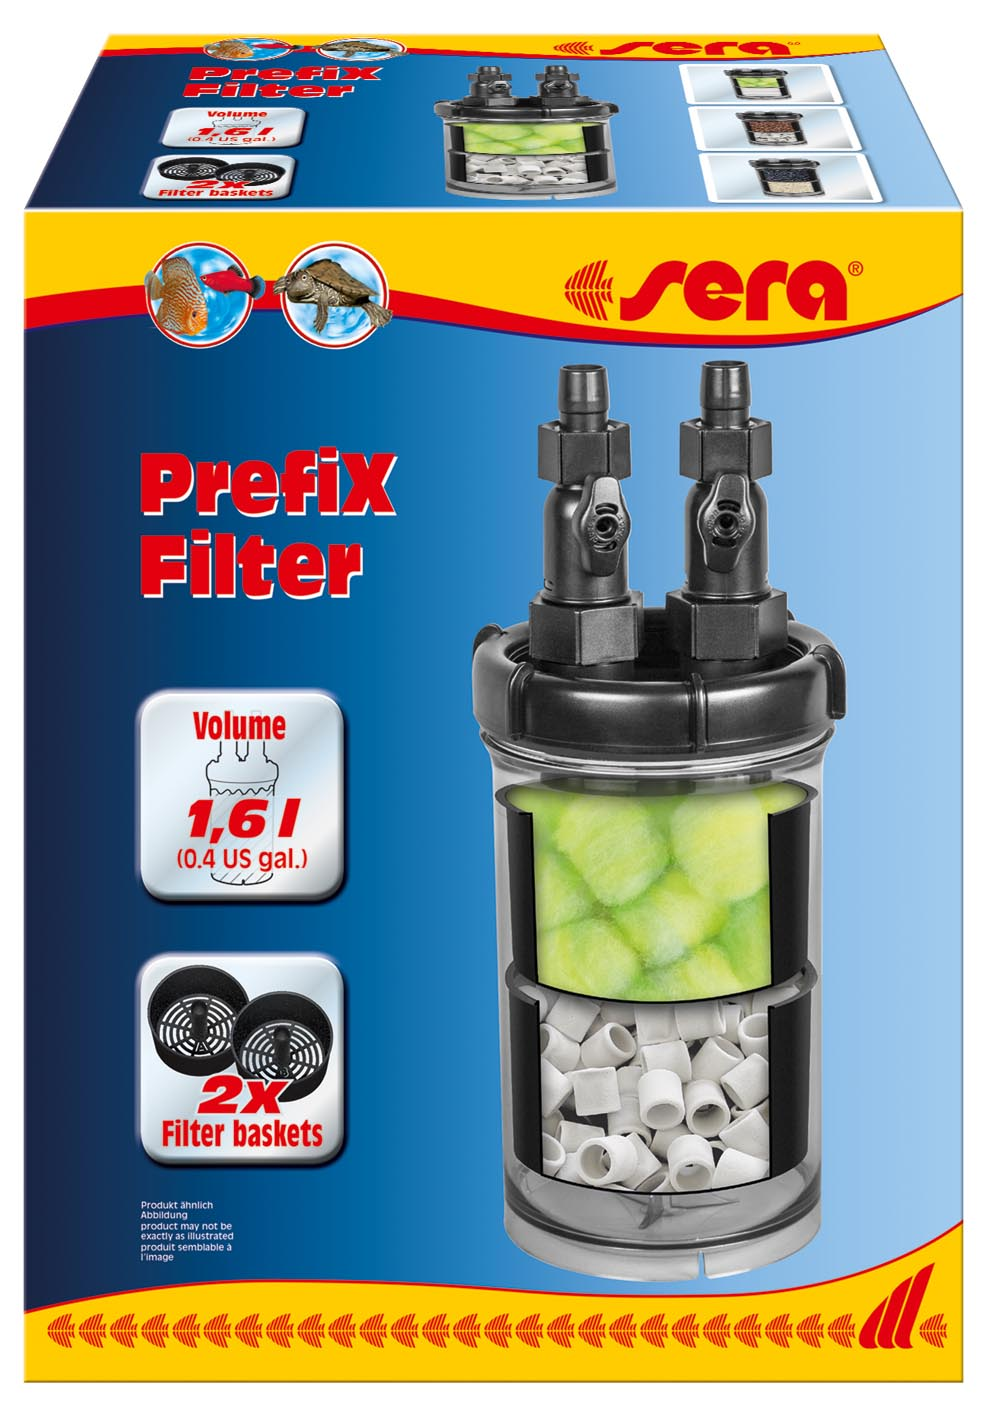 sera's new PrefiX Filter is a non-motorized media container that can be used to expand the filtration volume and capacity of existing filter systems.